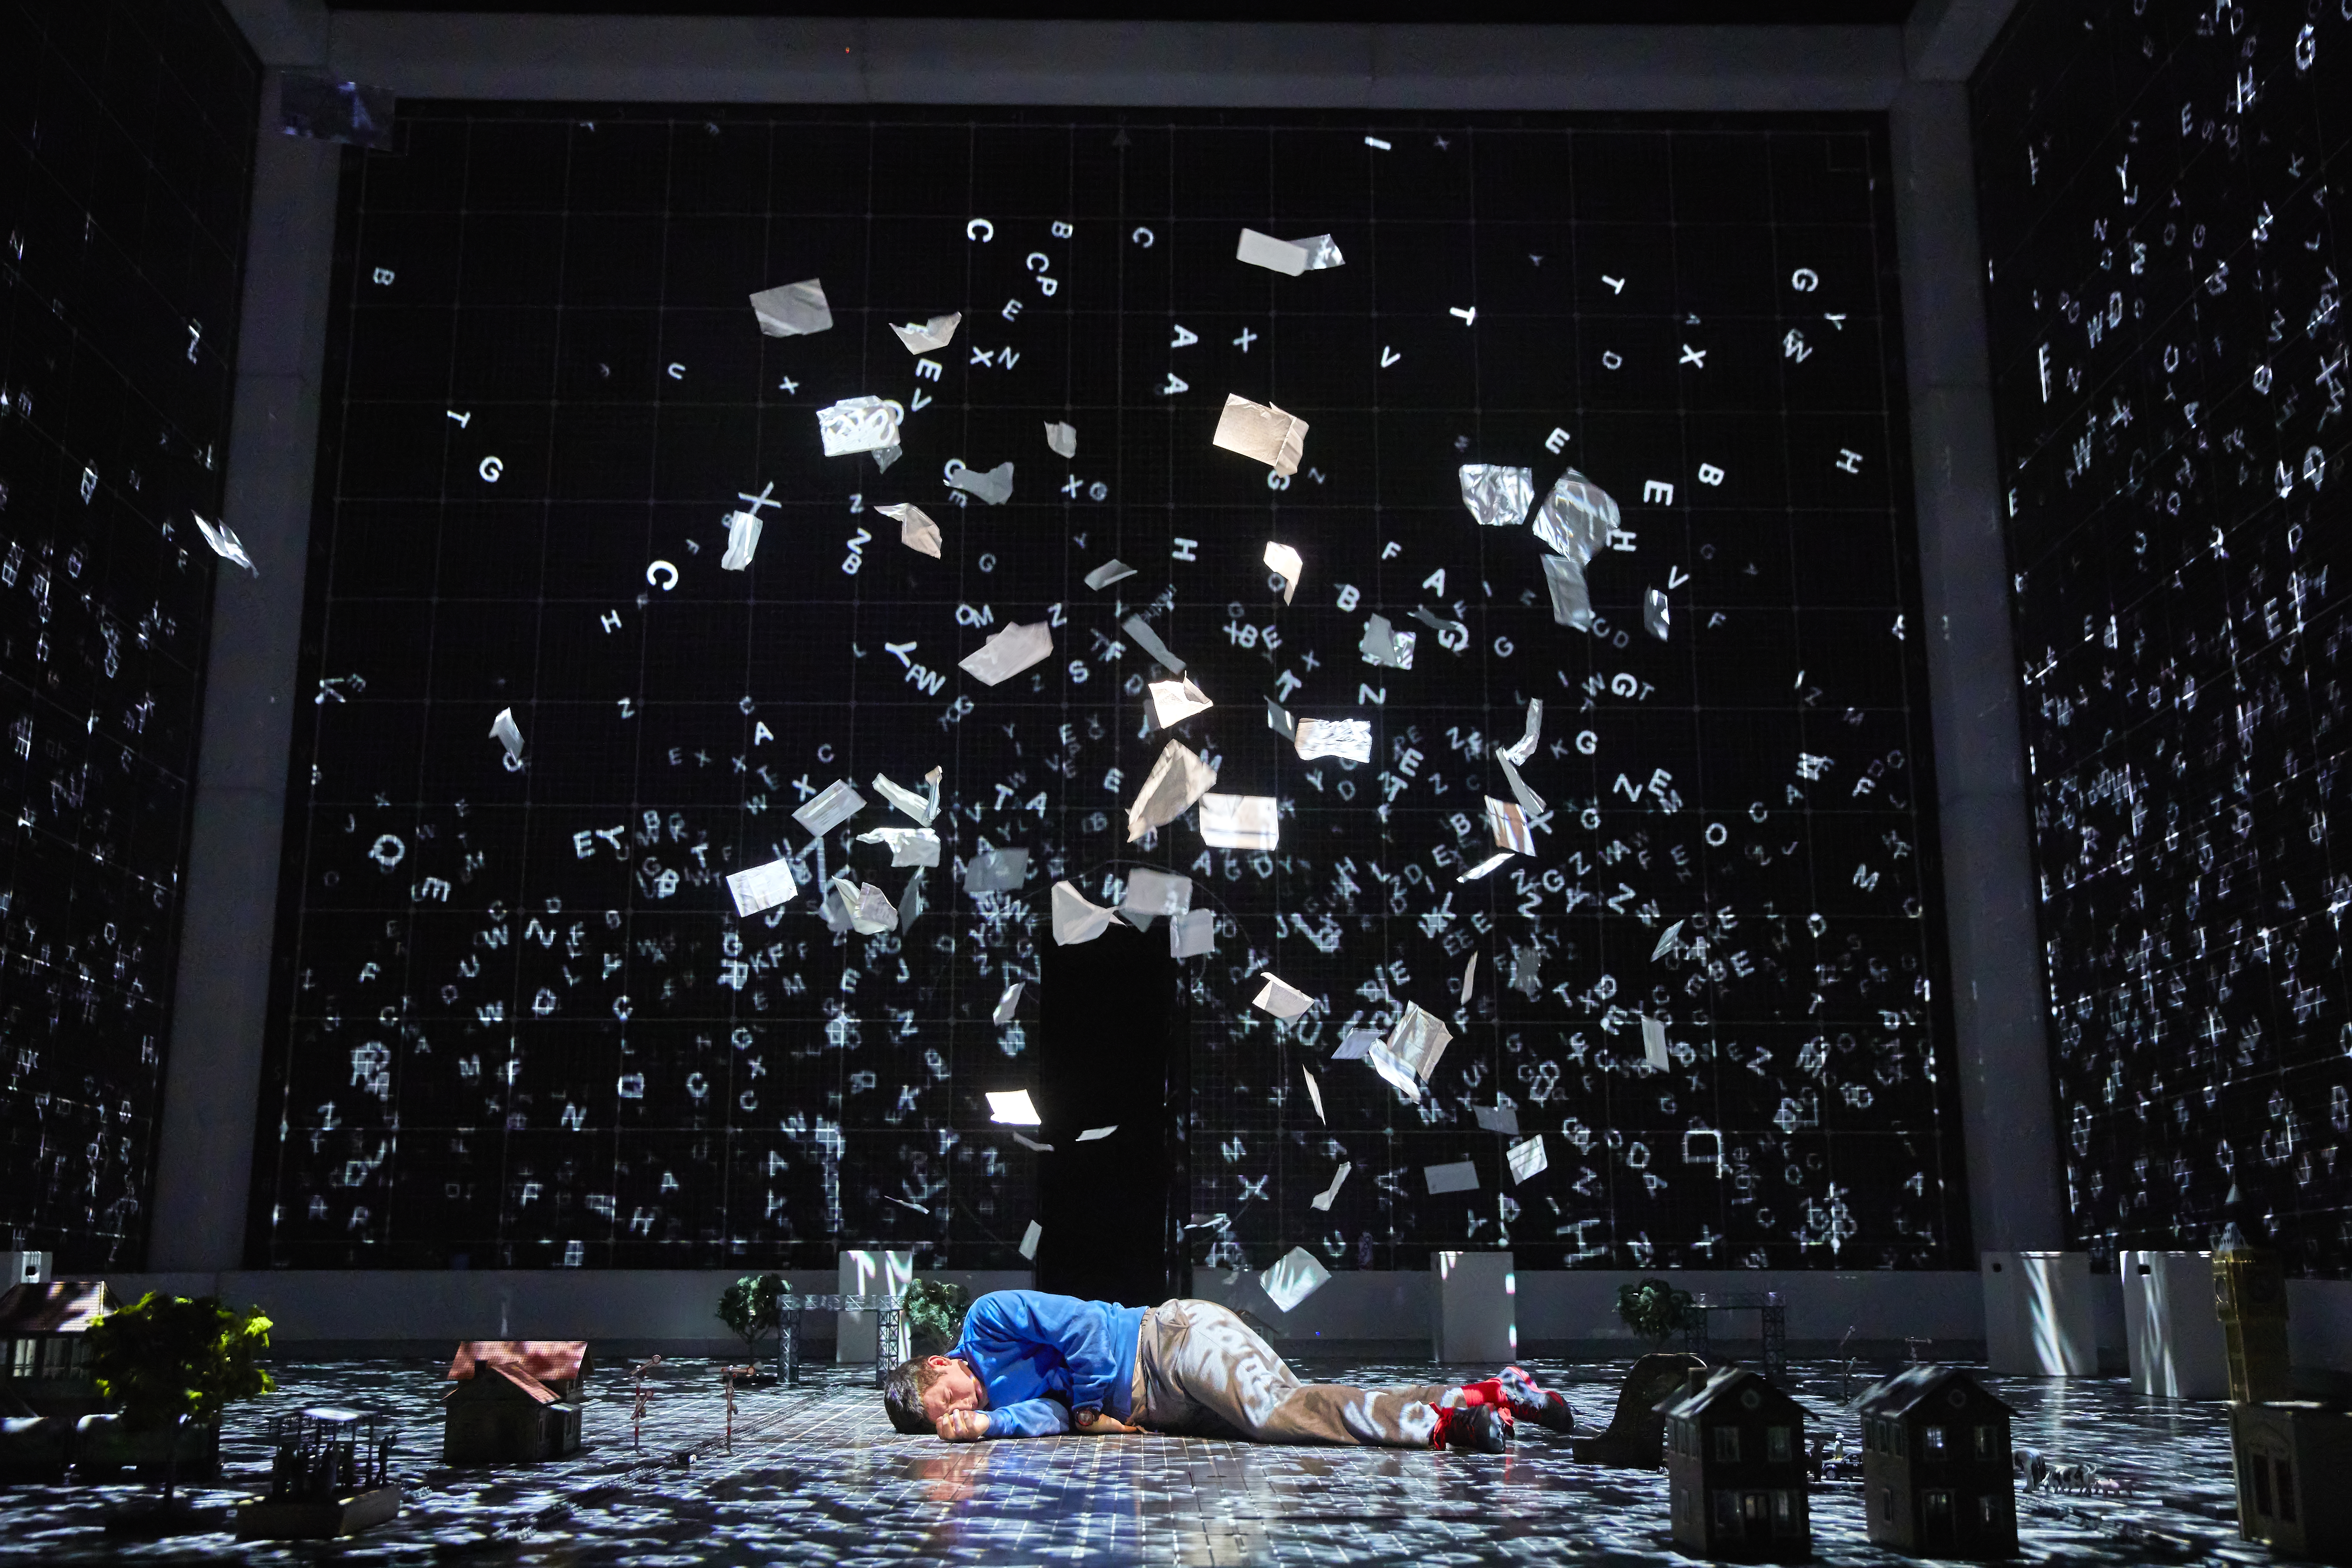 Scott Reid as Christopher Boone in the National Theatre production of The Curious Incident of the Dog in the Night-Time.